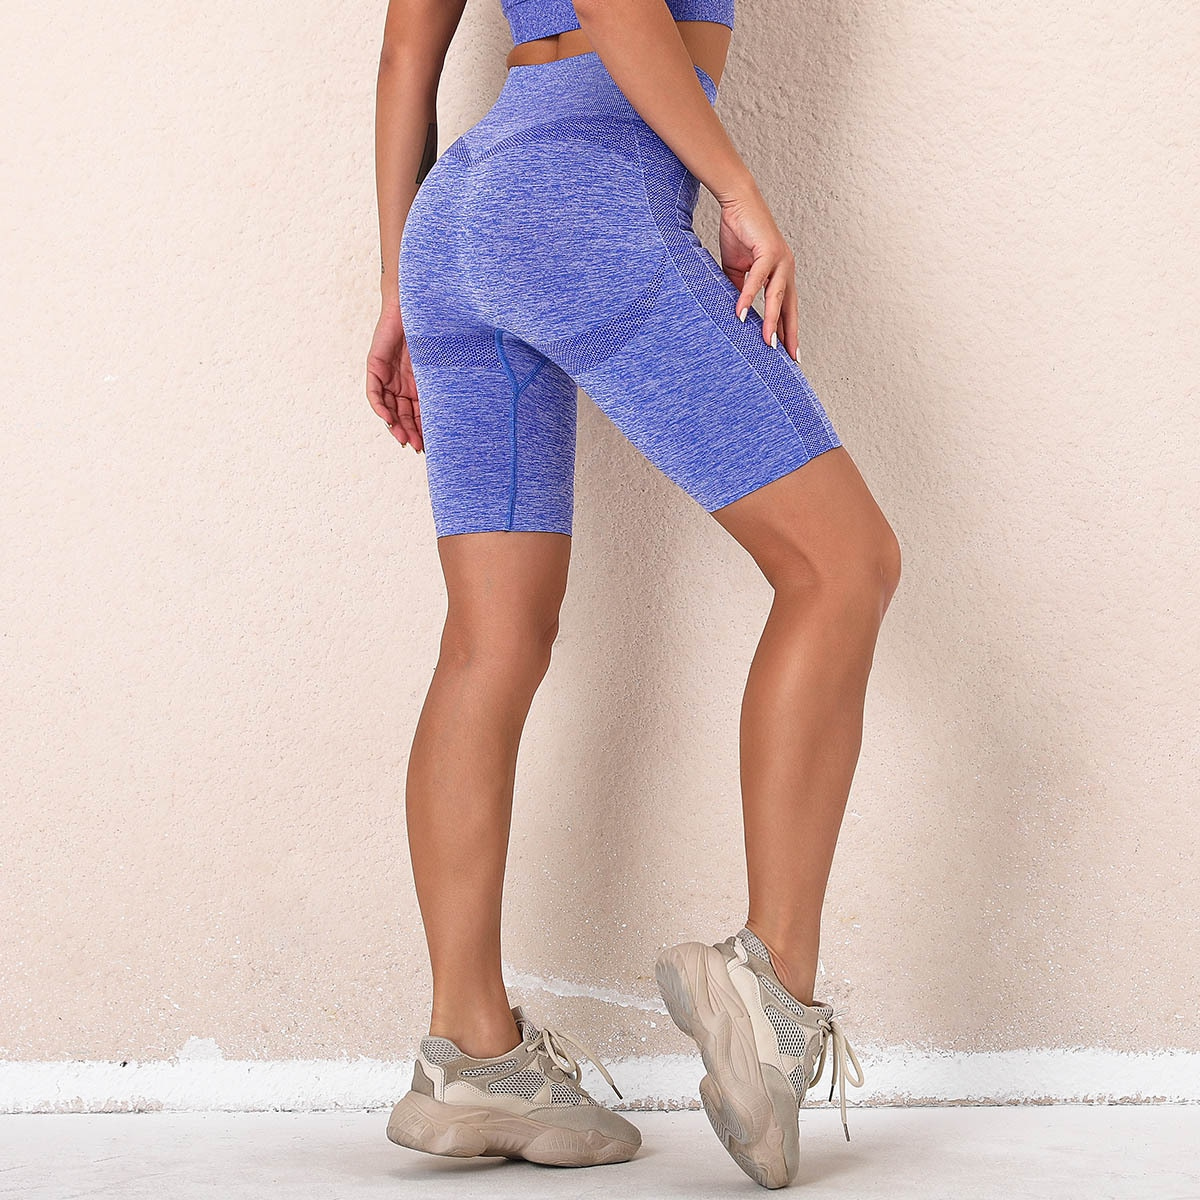 New Women's New Seamless Fitness Shorts Fitness Yoga Short Tight-Fitting Hip Yoga Shorts Compression Short Sexy Fitness Leggings